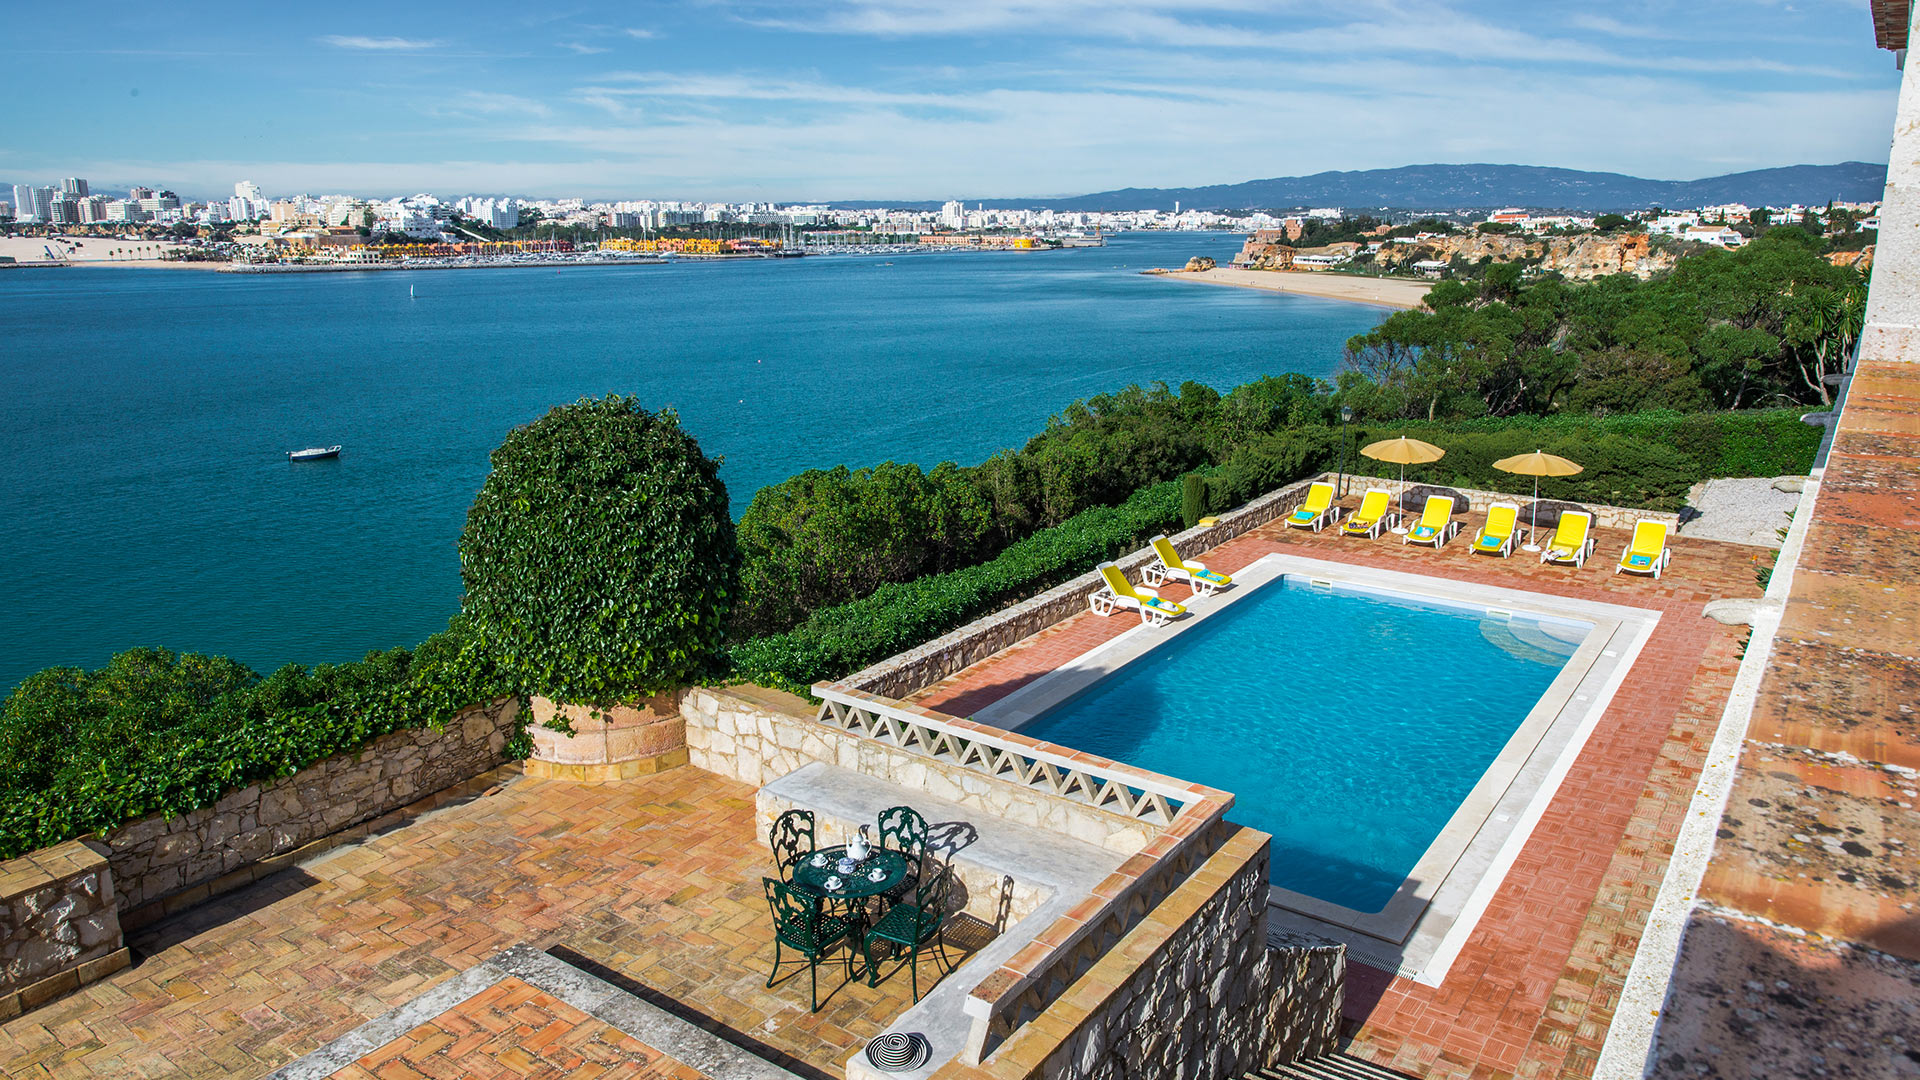 Villa Villa Royalty, Rental in Algarve